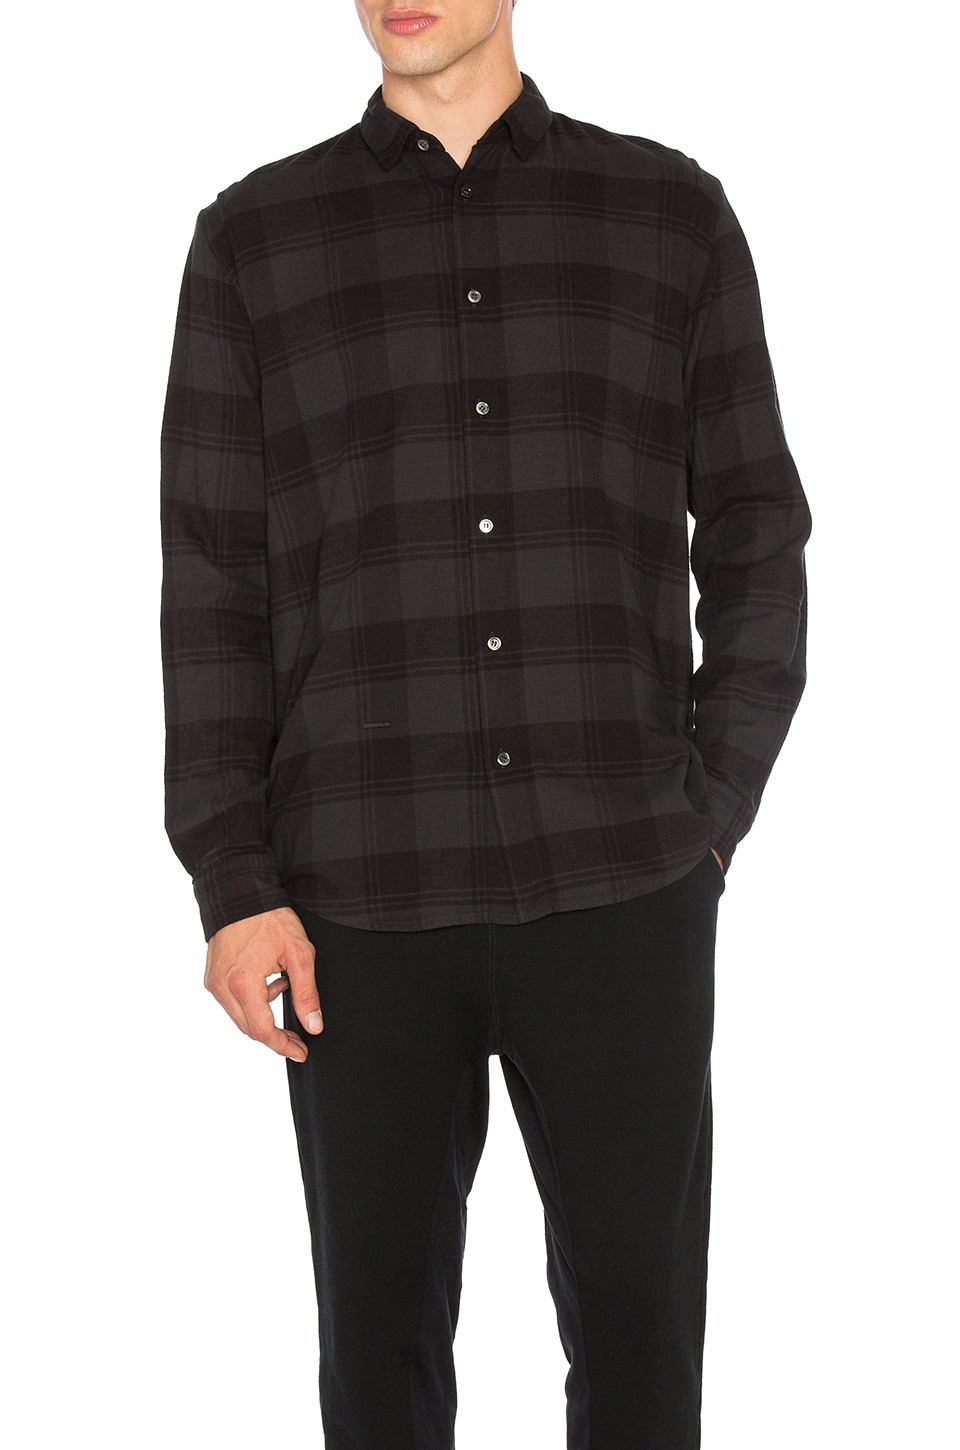 Robert Geller Plaid Dress Shirt in Charcoal